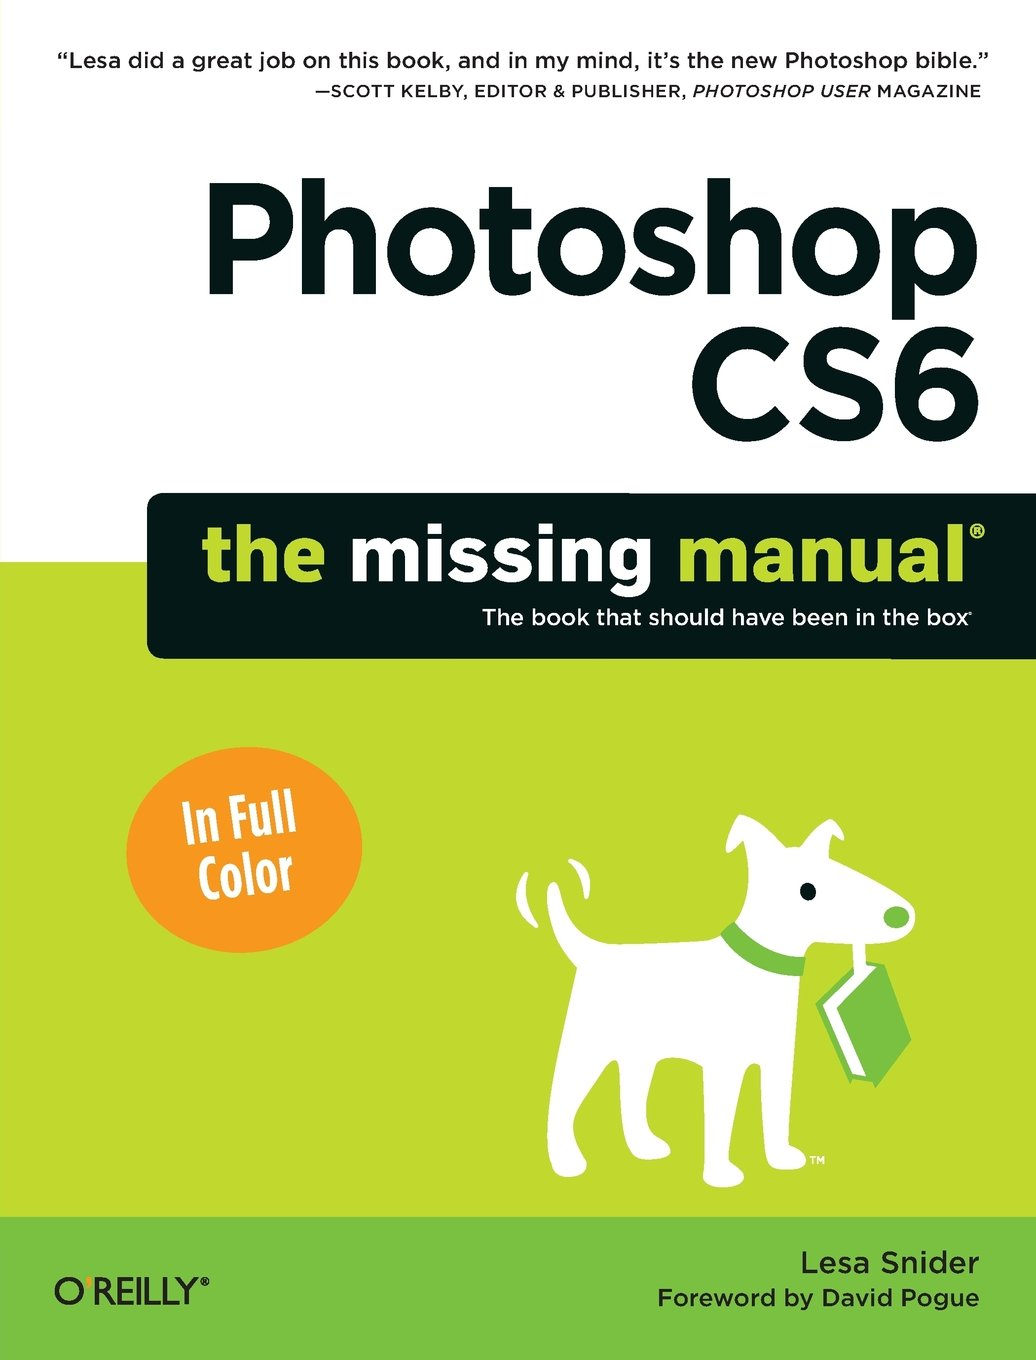 Photoshop cs6 extended tutorials for beginners pdf gallery any buy photoshop cs6 the missing manual book online at low prices in buy photoshop cs6 the baditri Choice Image